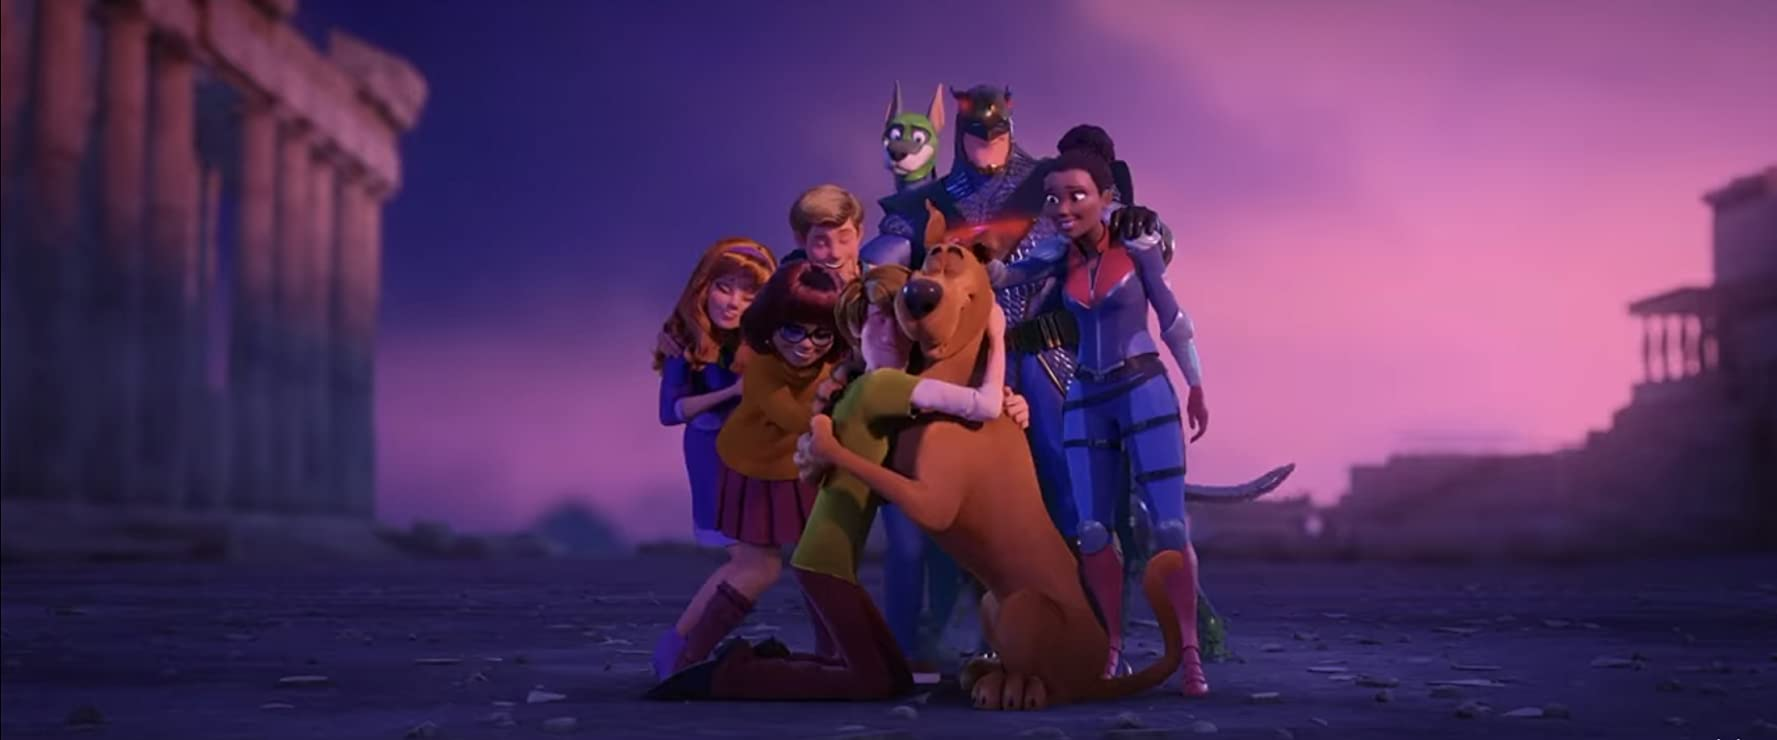 Mark Wahlberg, Jason Isaacs, Will Forte, Ken Jeong, Frank Welker, Amanda Seyfried, Zac Efron, Gina Rodriguez, and Kiersey Clemons in Scoob! (2020)